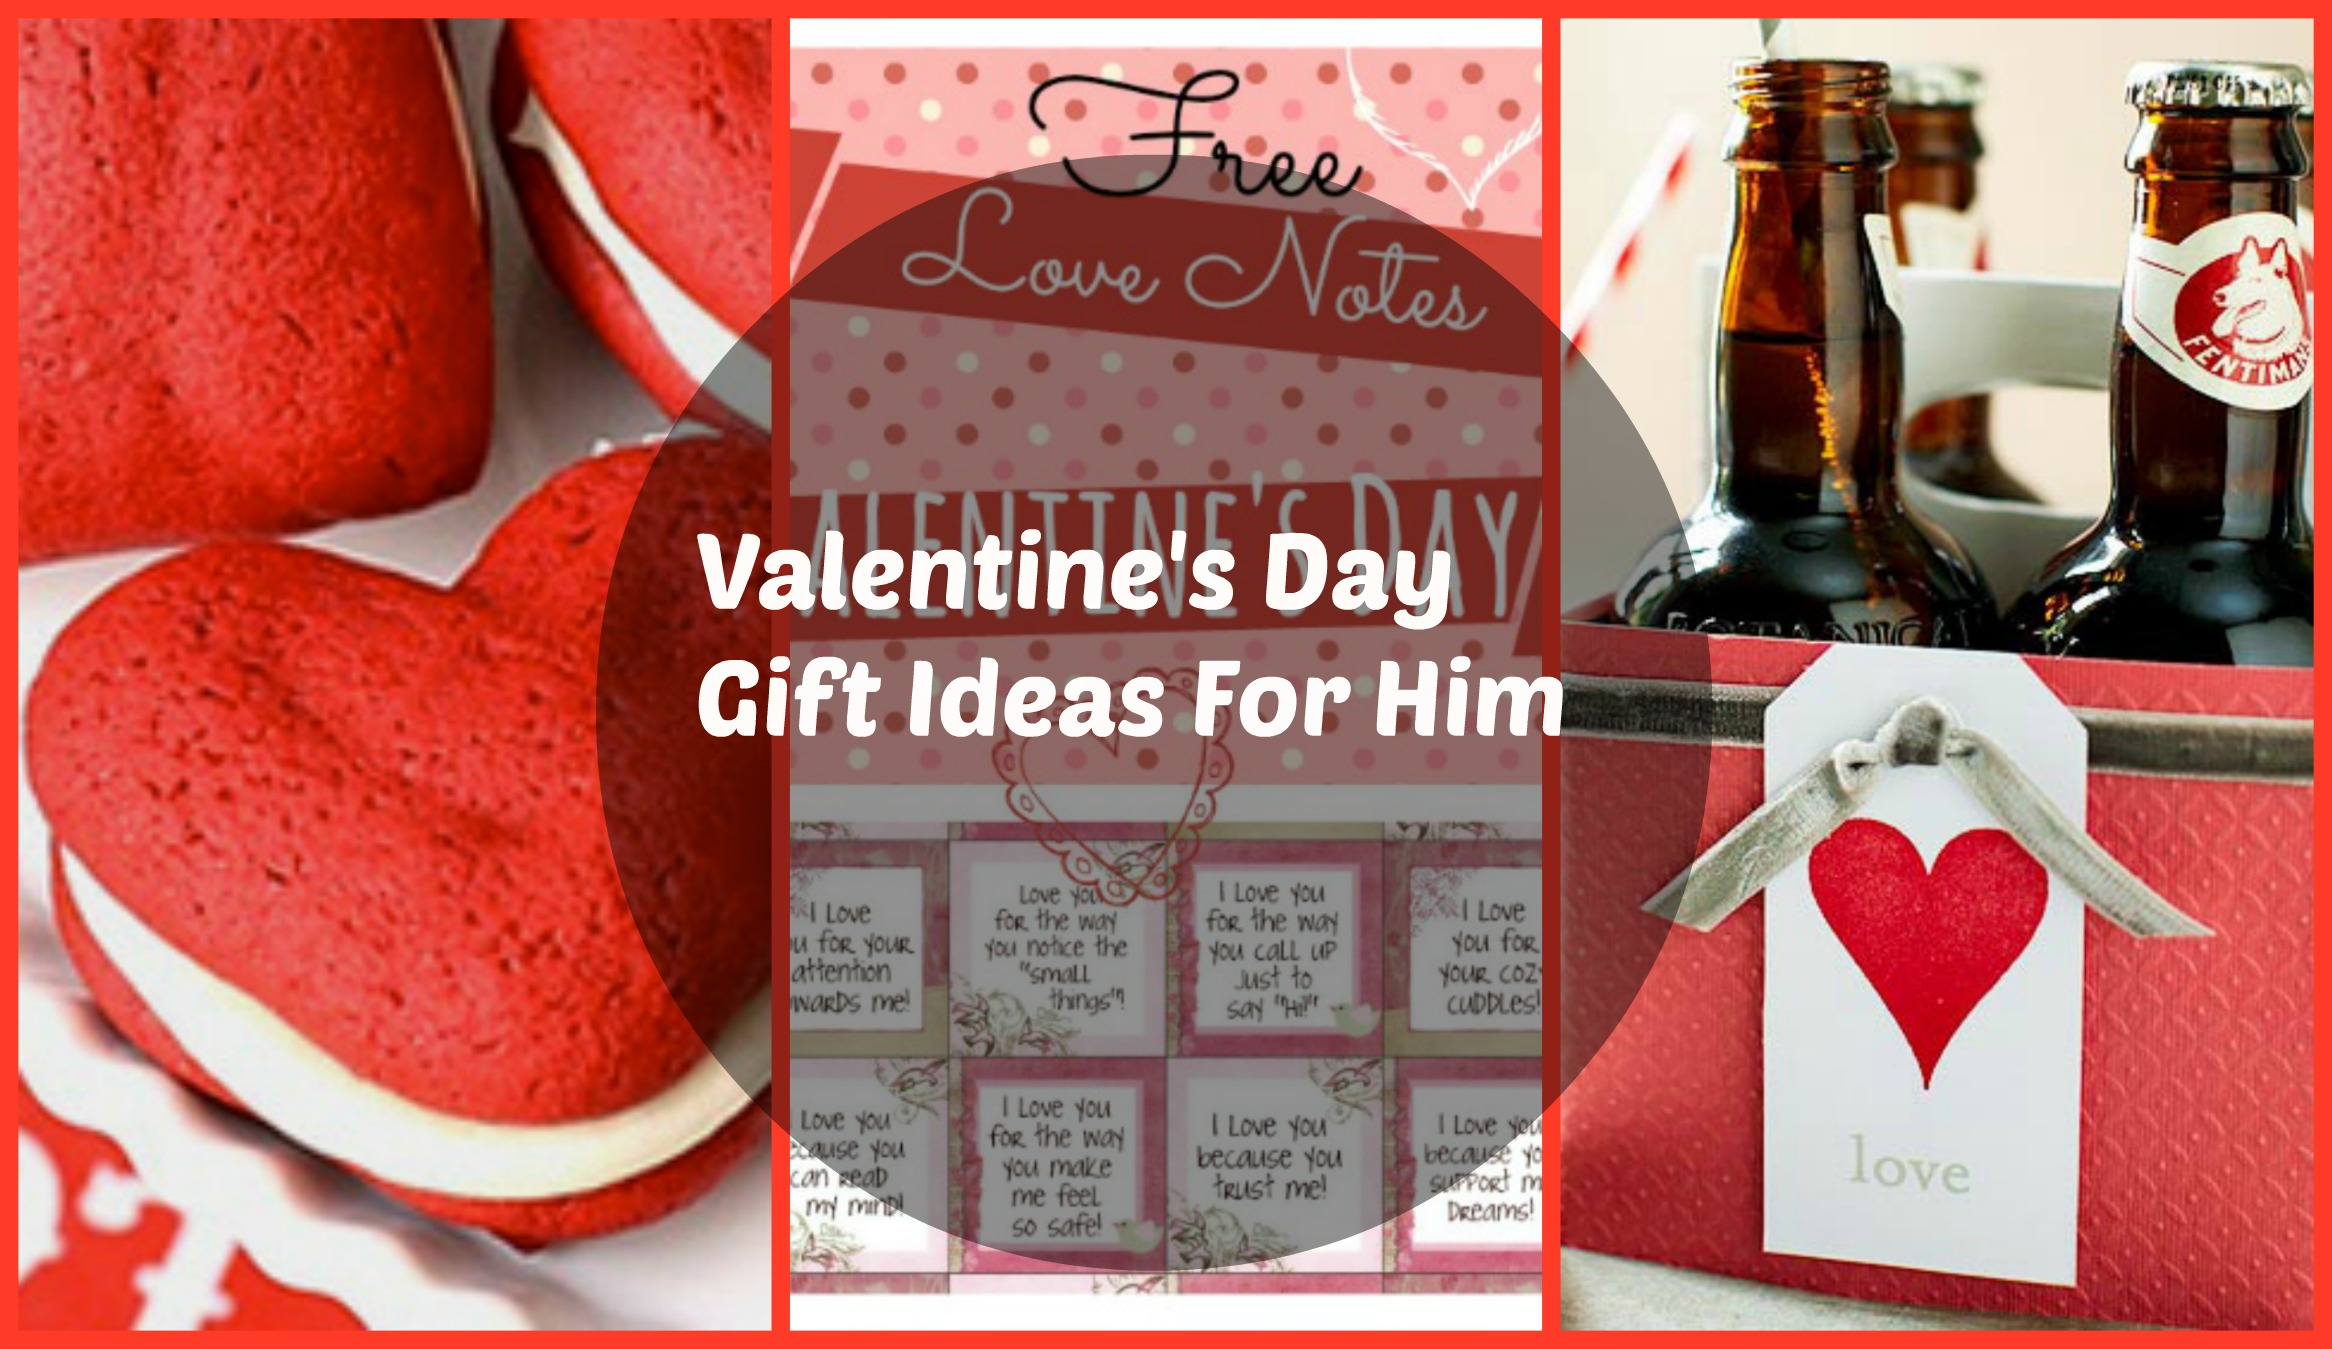 ideas for valentines day for him s gift ideas for him archives fashion trend seeker 12780